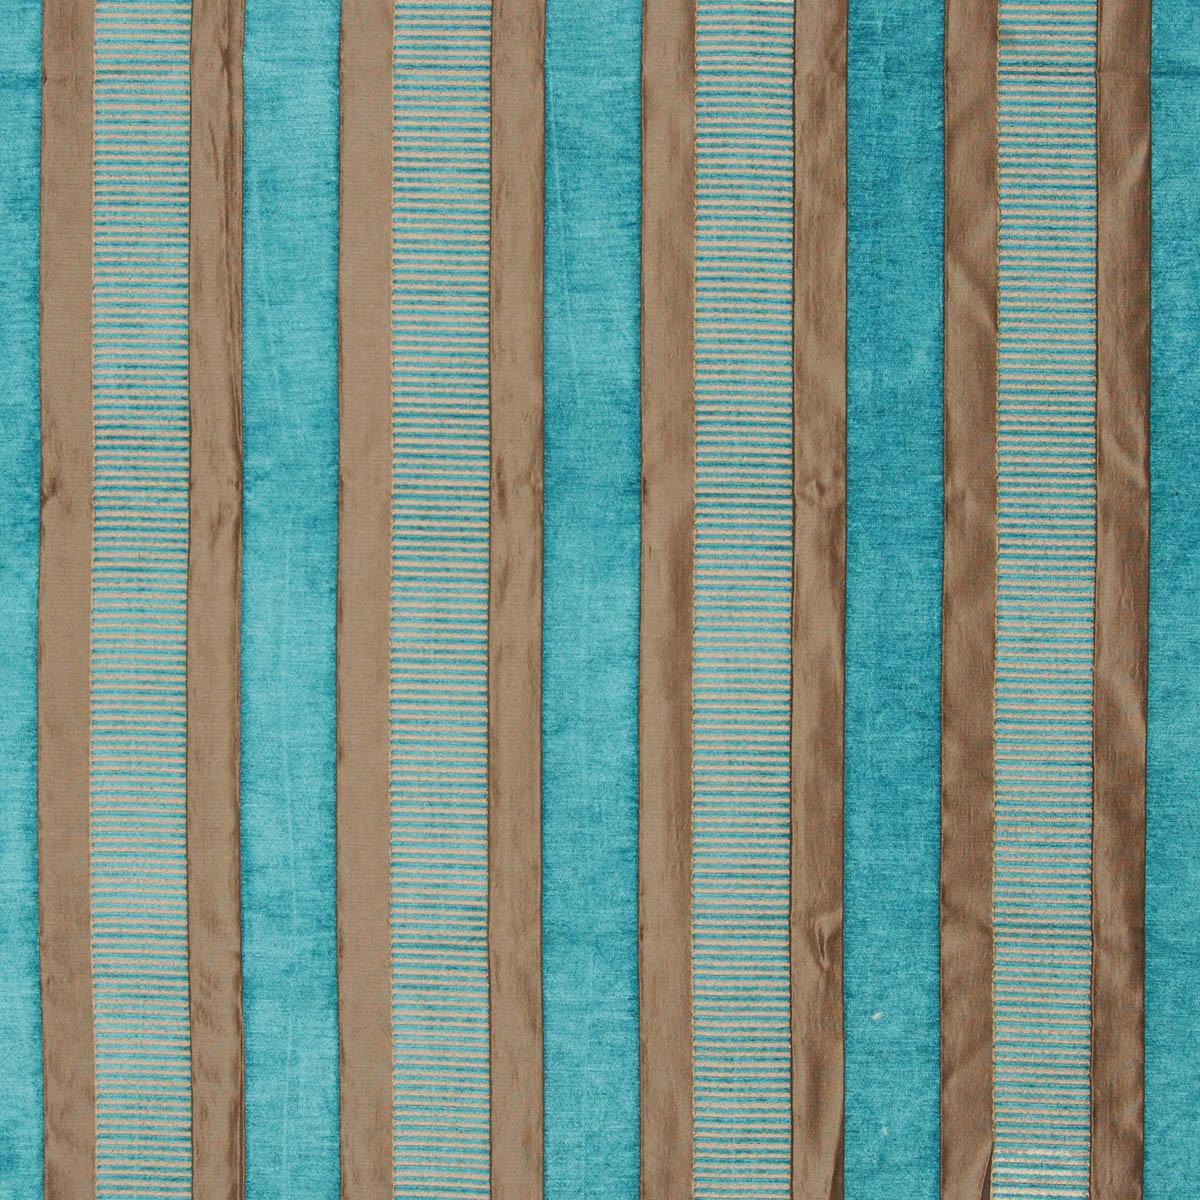 Cheap Curtains Online Brown Curtain Fabric Shop For Cheap Curtains And Blinds